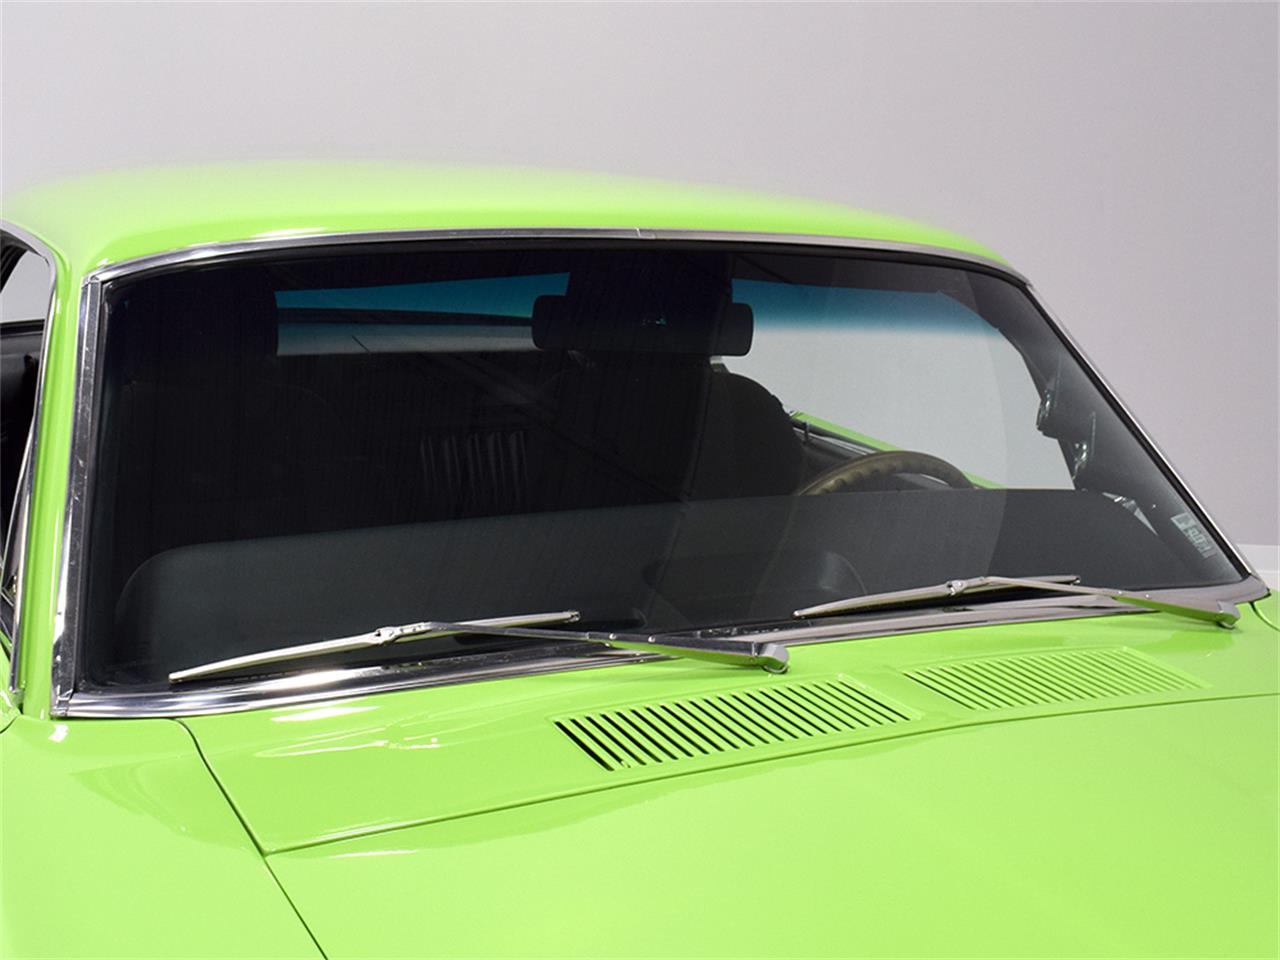 Large Picture of 1967 Mercury Cougar - $49,900.00 Offered by Harwood Motors, LTD. - MH5X